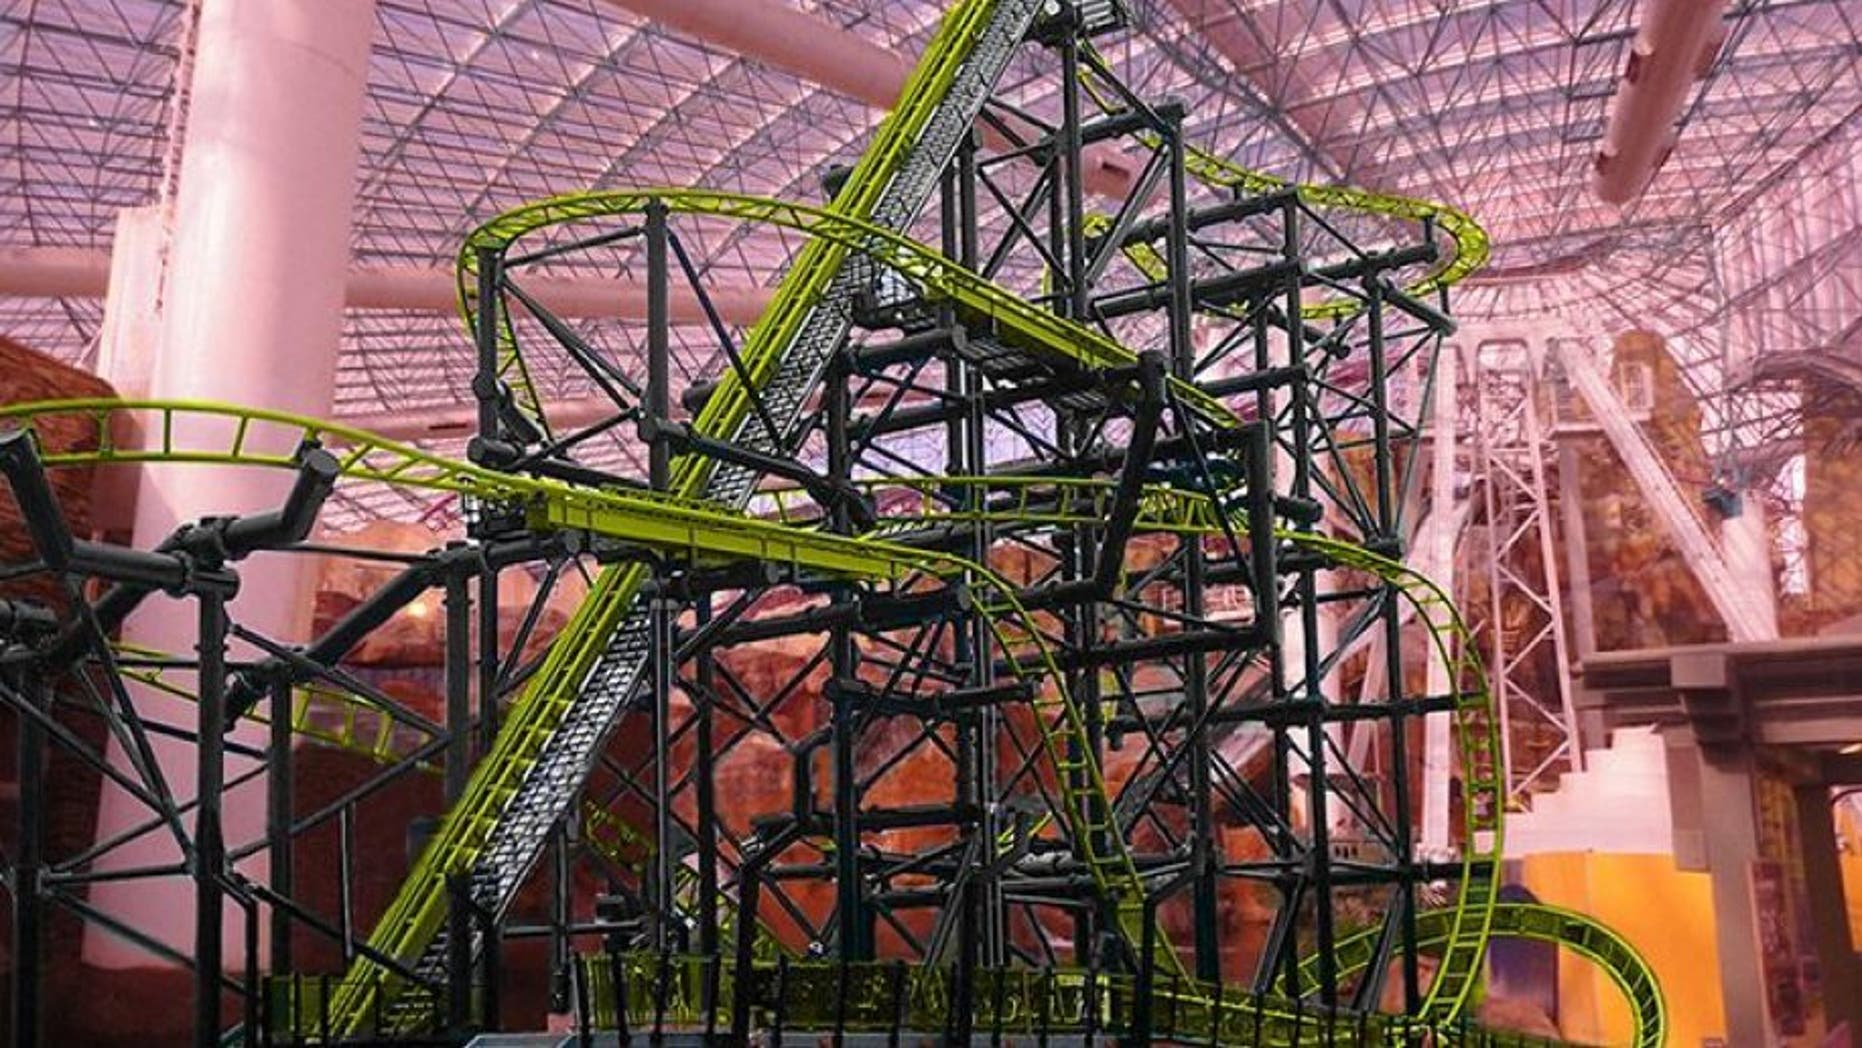 The woman, who was said to be between 25 and 30, was riding the El Loco Roller Coaster at the casino's indoor Adventuredome amusement park when the incident occurred.